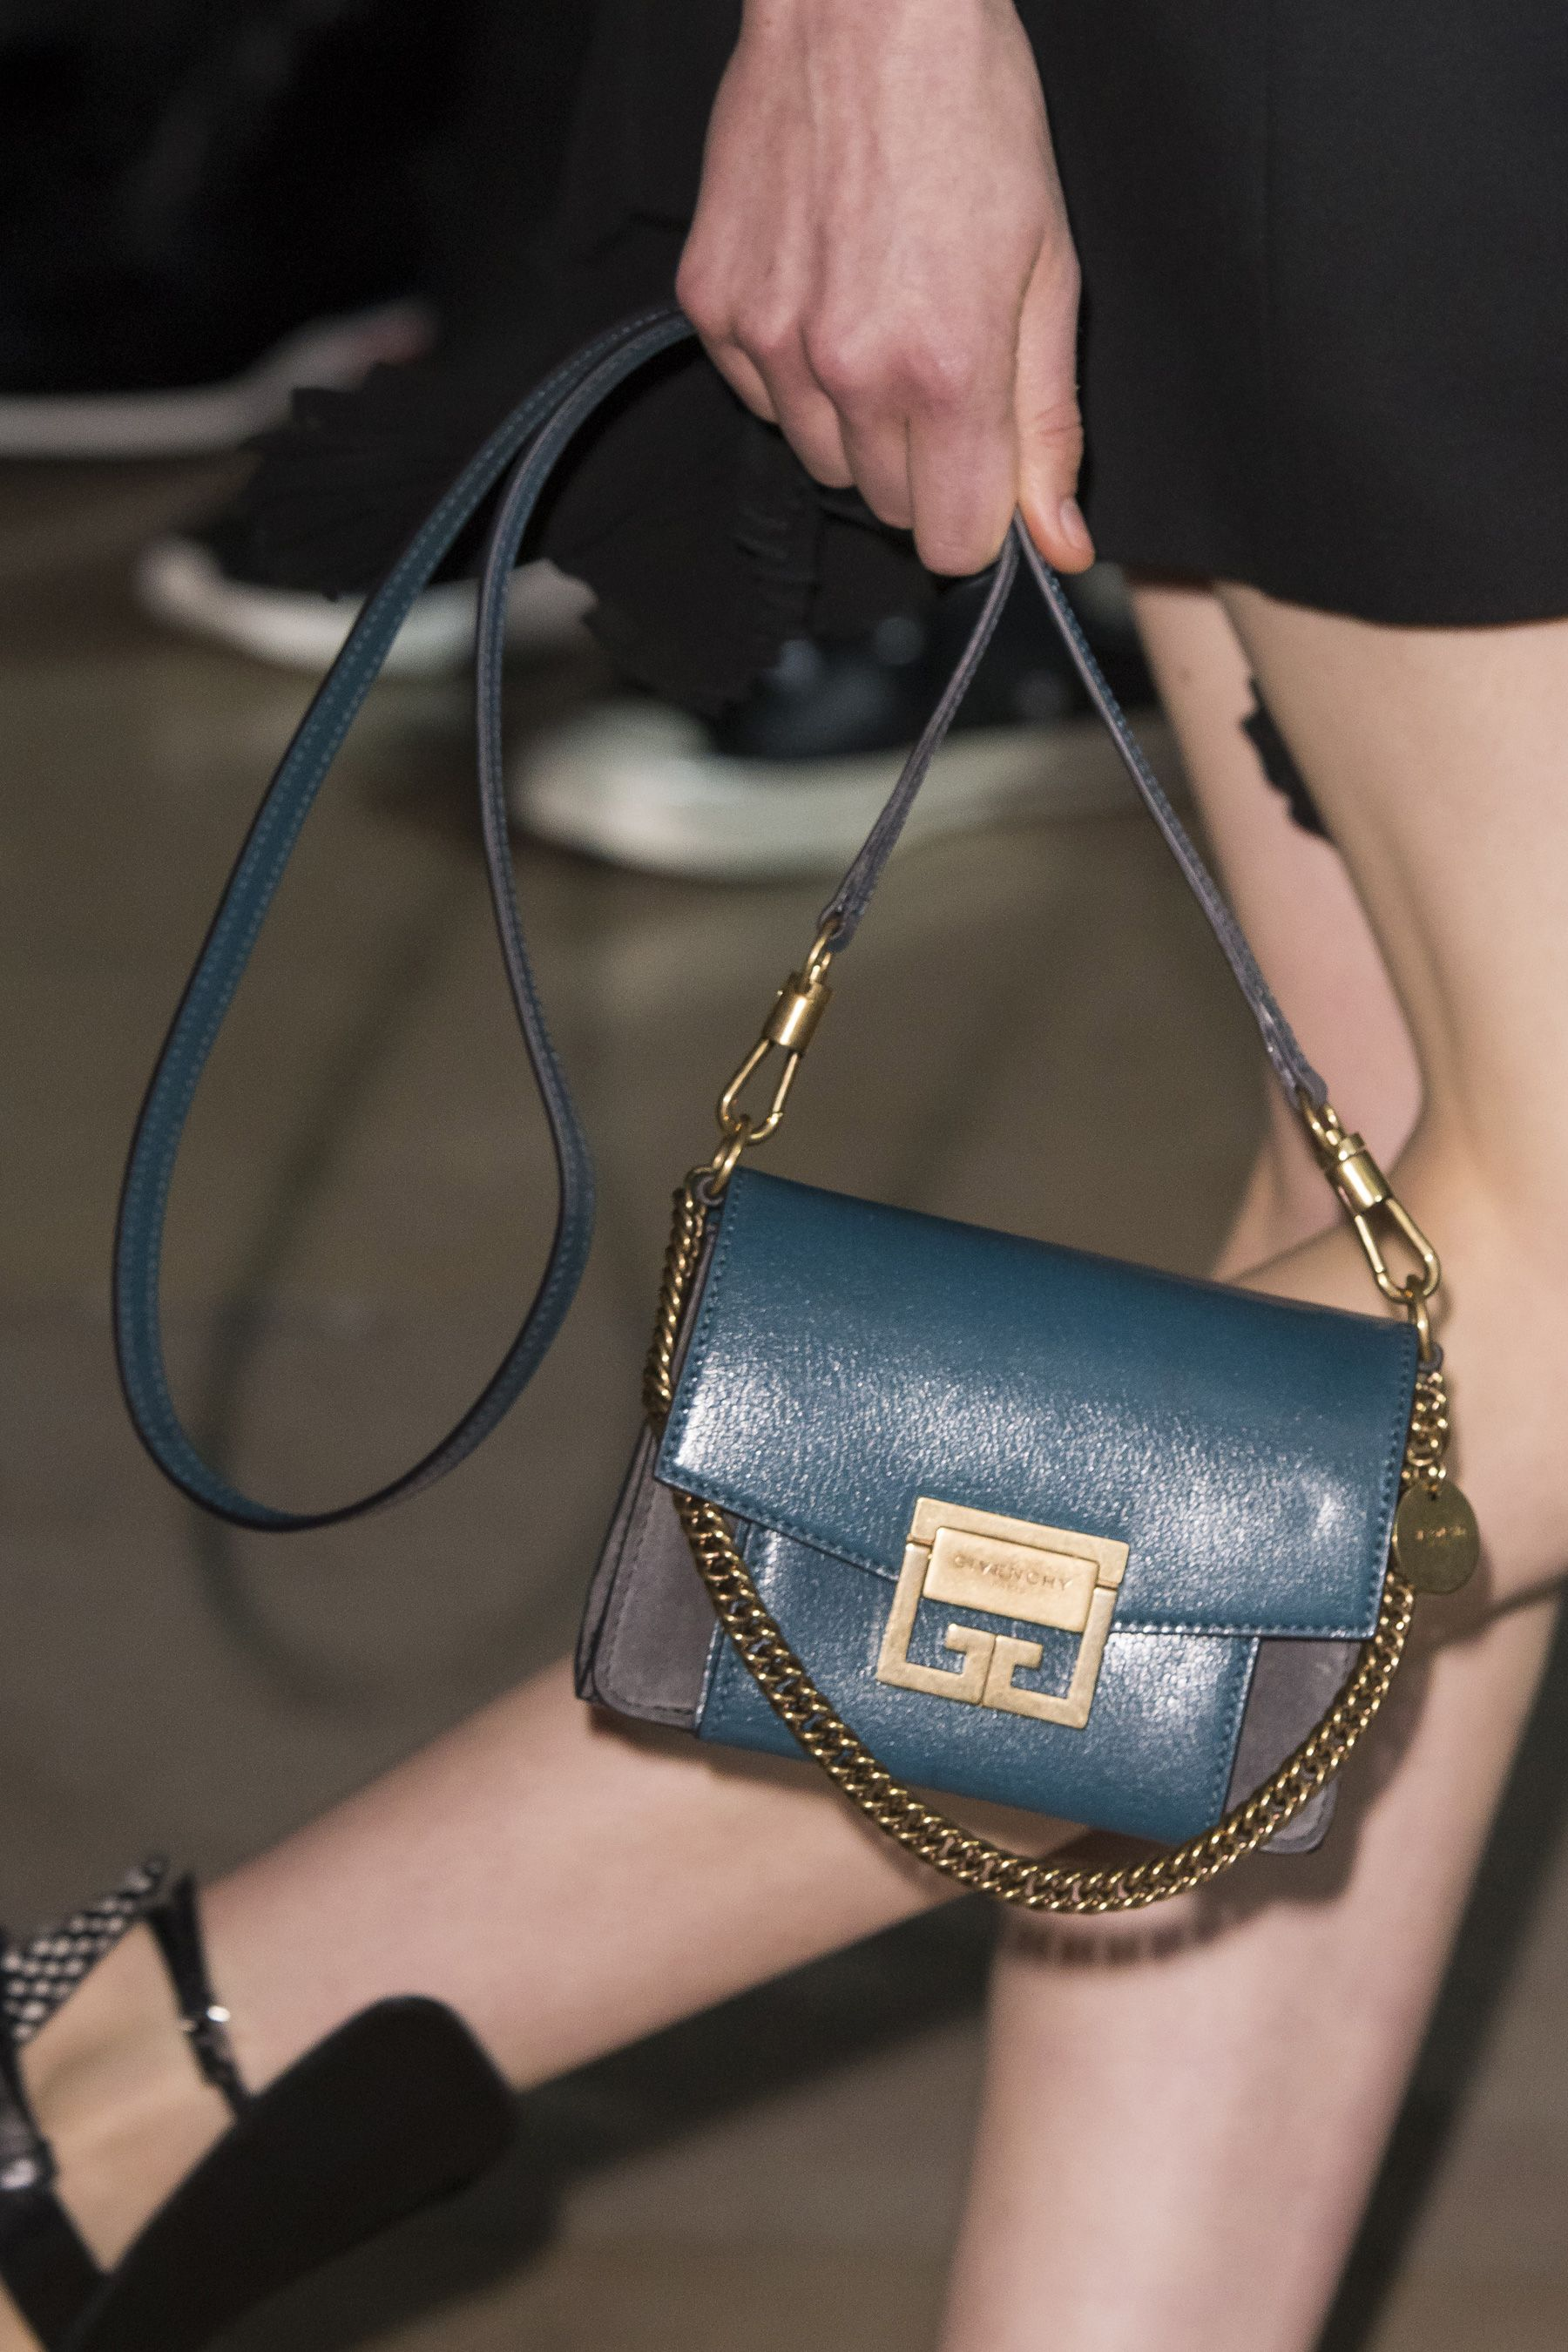 c15091bbf9 Givenchy Spring 2018 Fashion Show Details